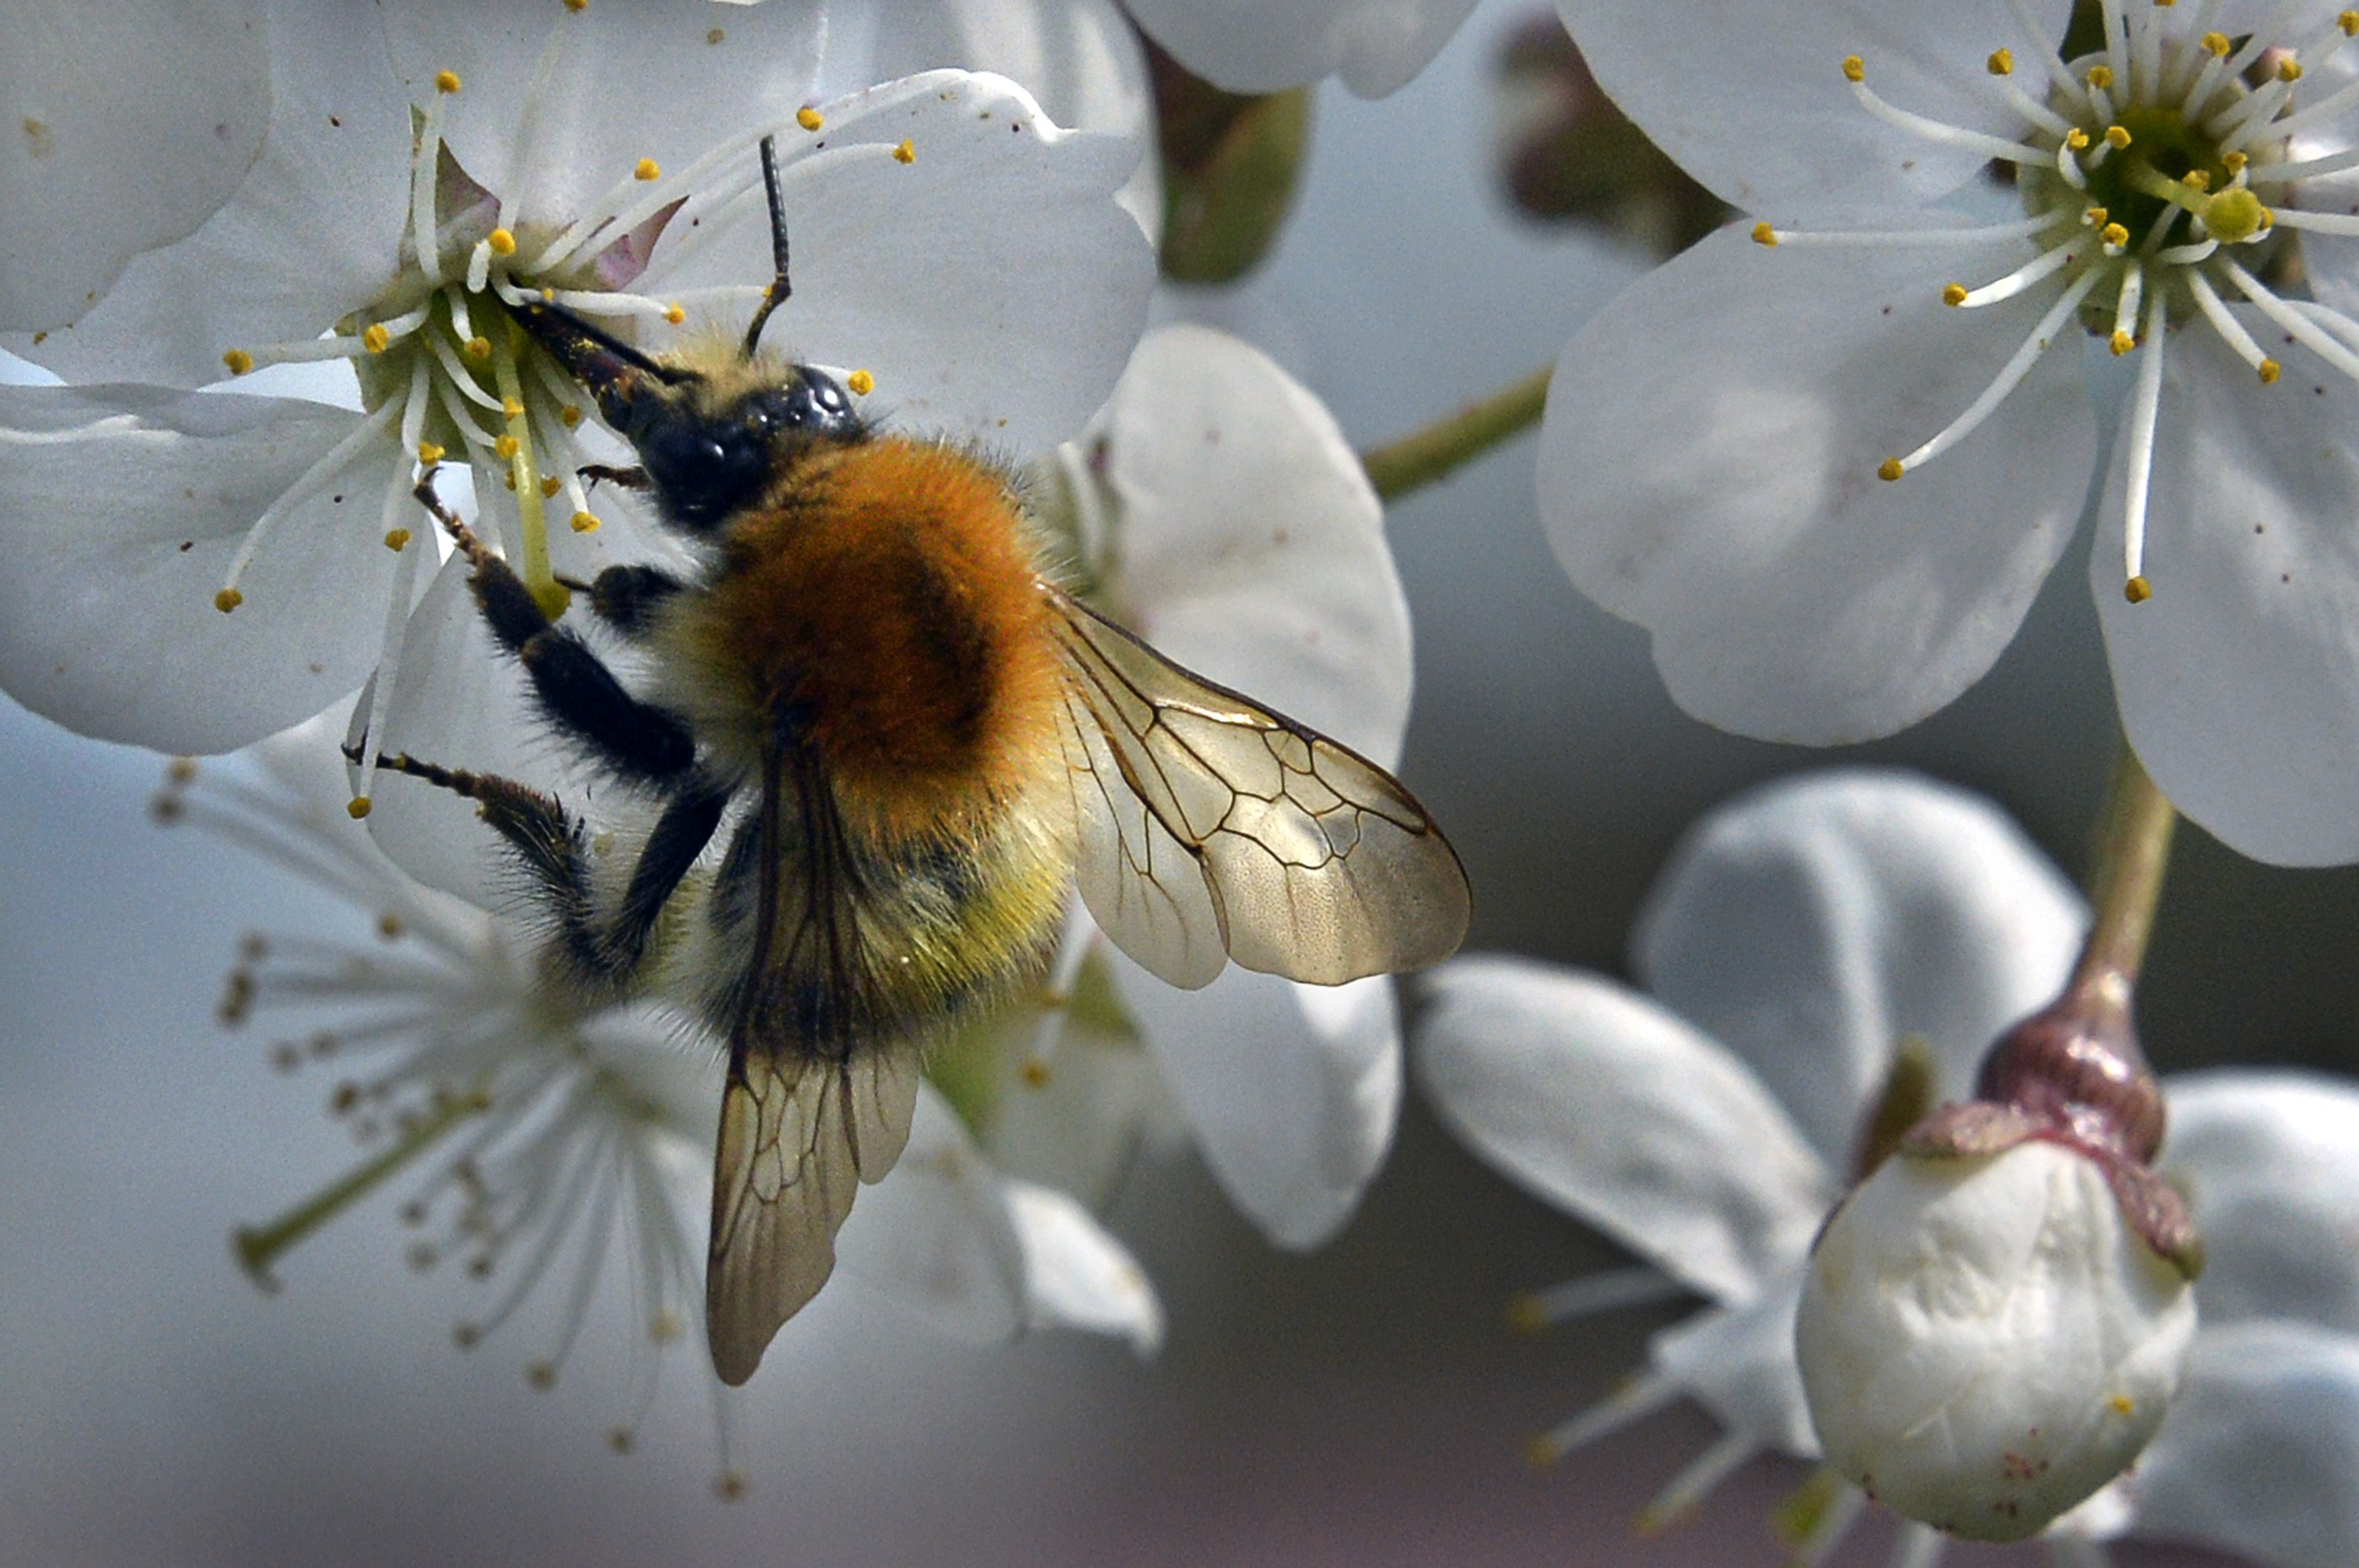 RUSSIA-BEE-NATURE-FEATURE